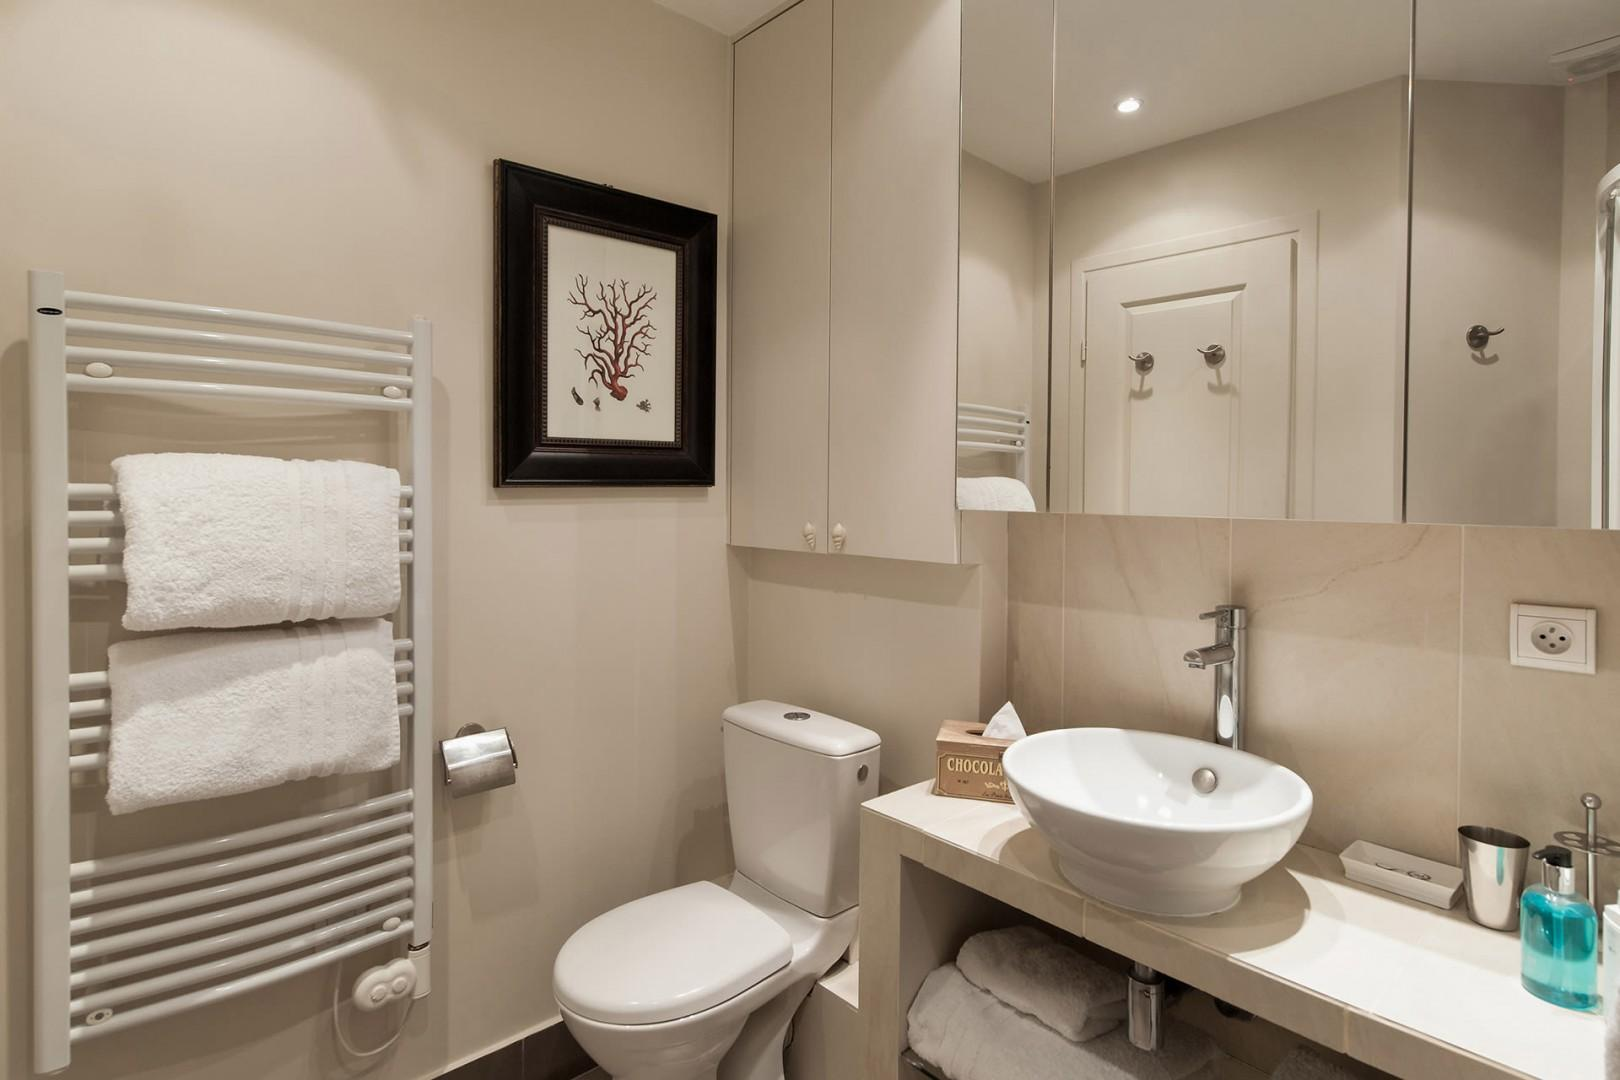 Pamper yourself in the luxurious and modern bathroom.